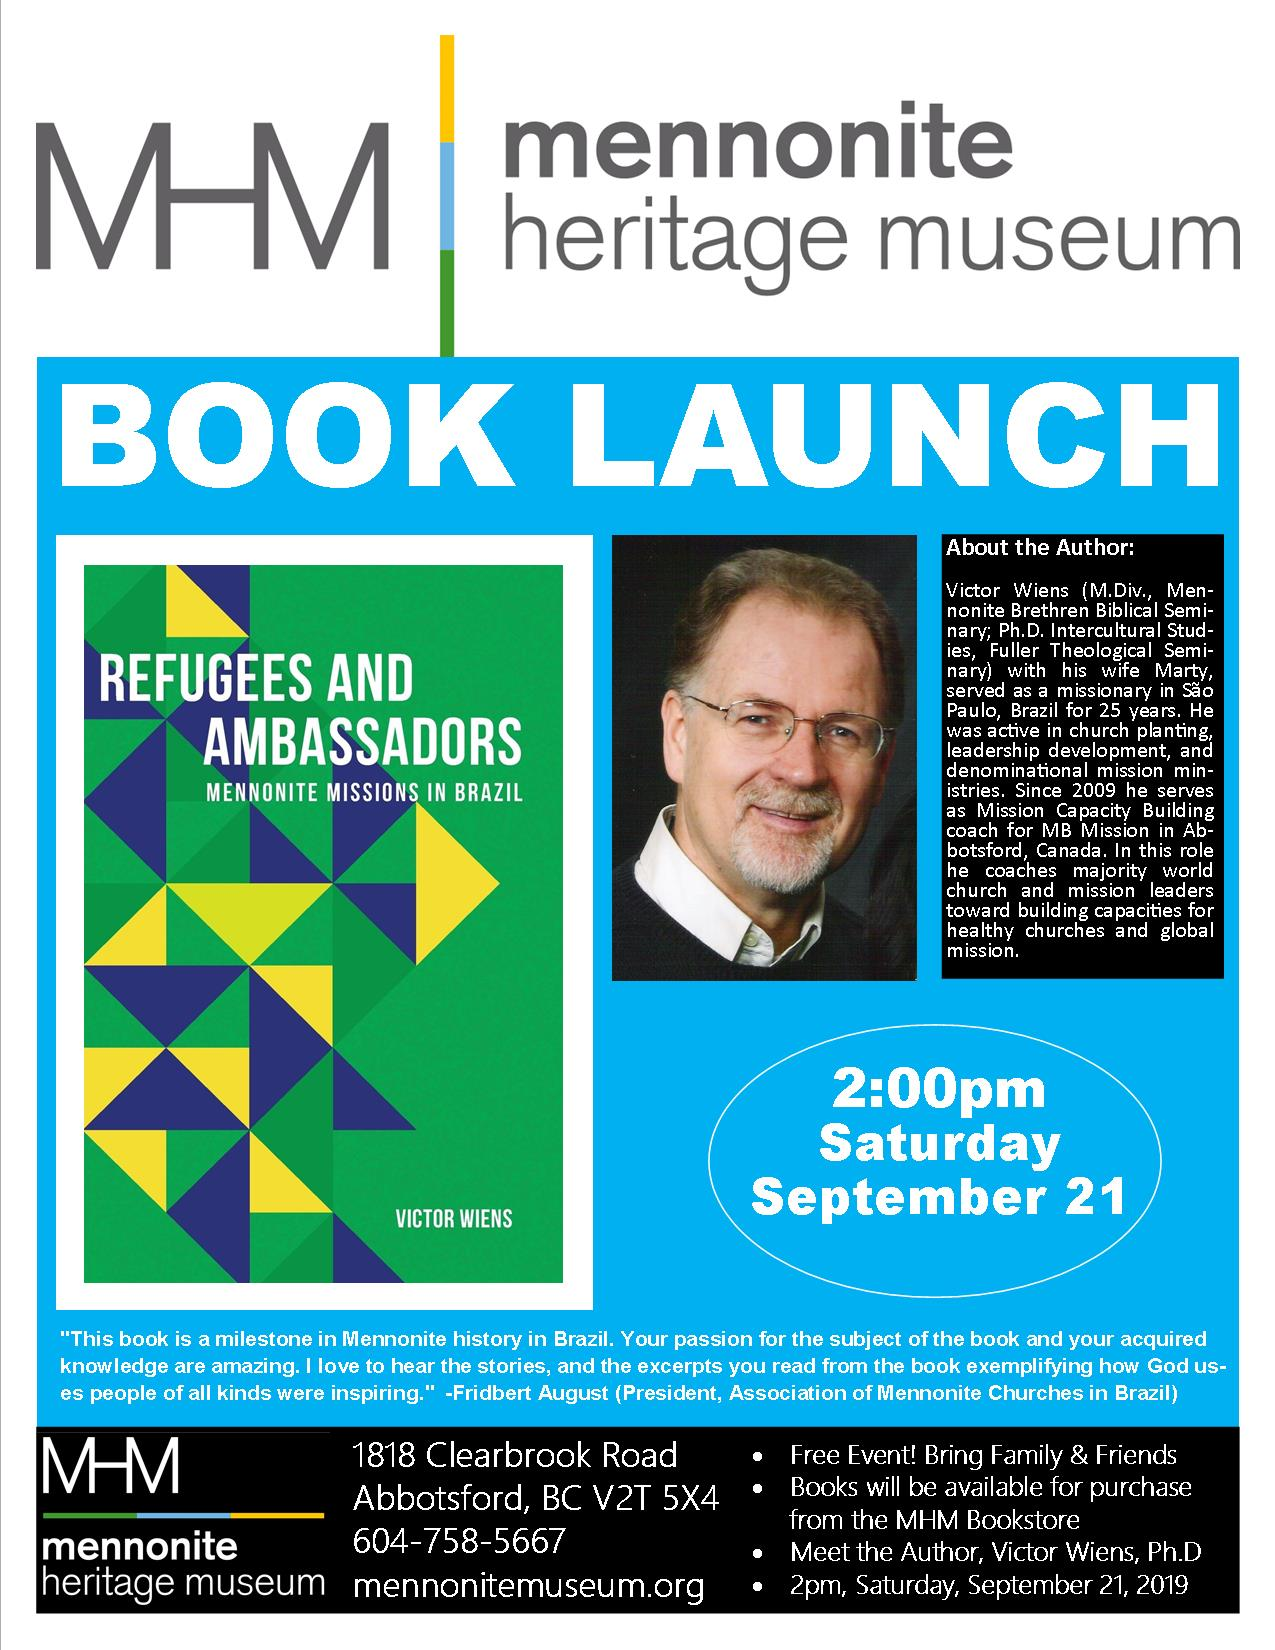 2019 09 21 MHM Book Launch Victor Wiens PhD Poster